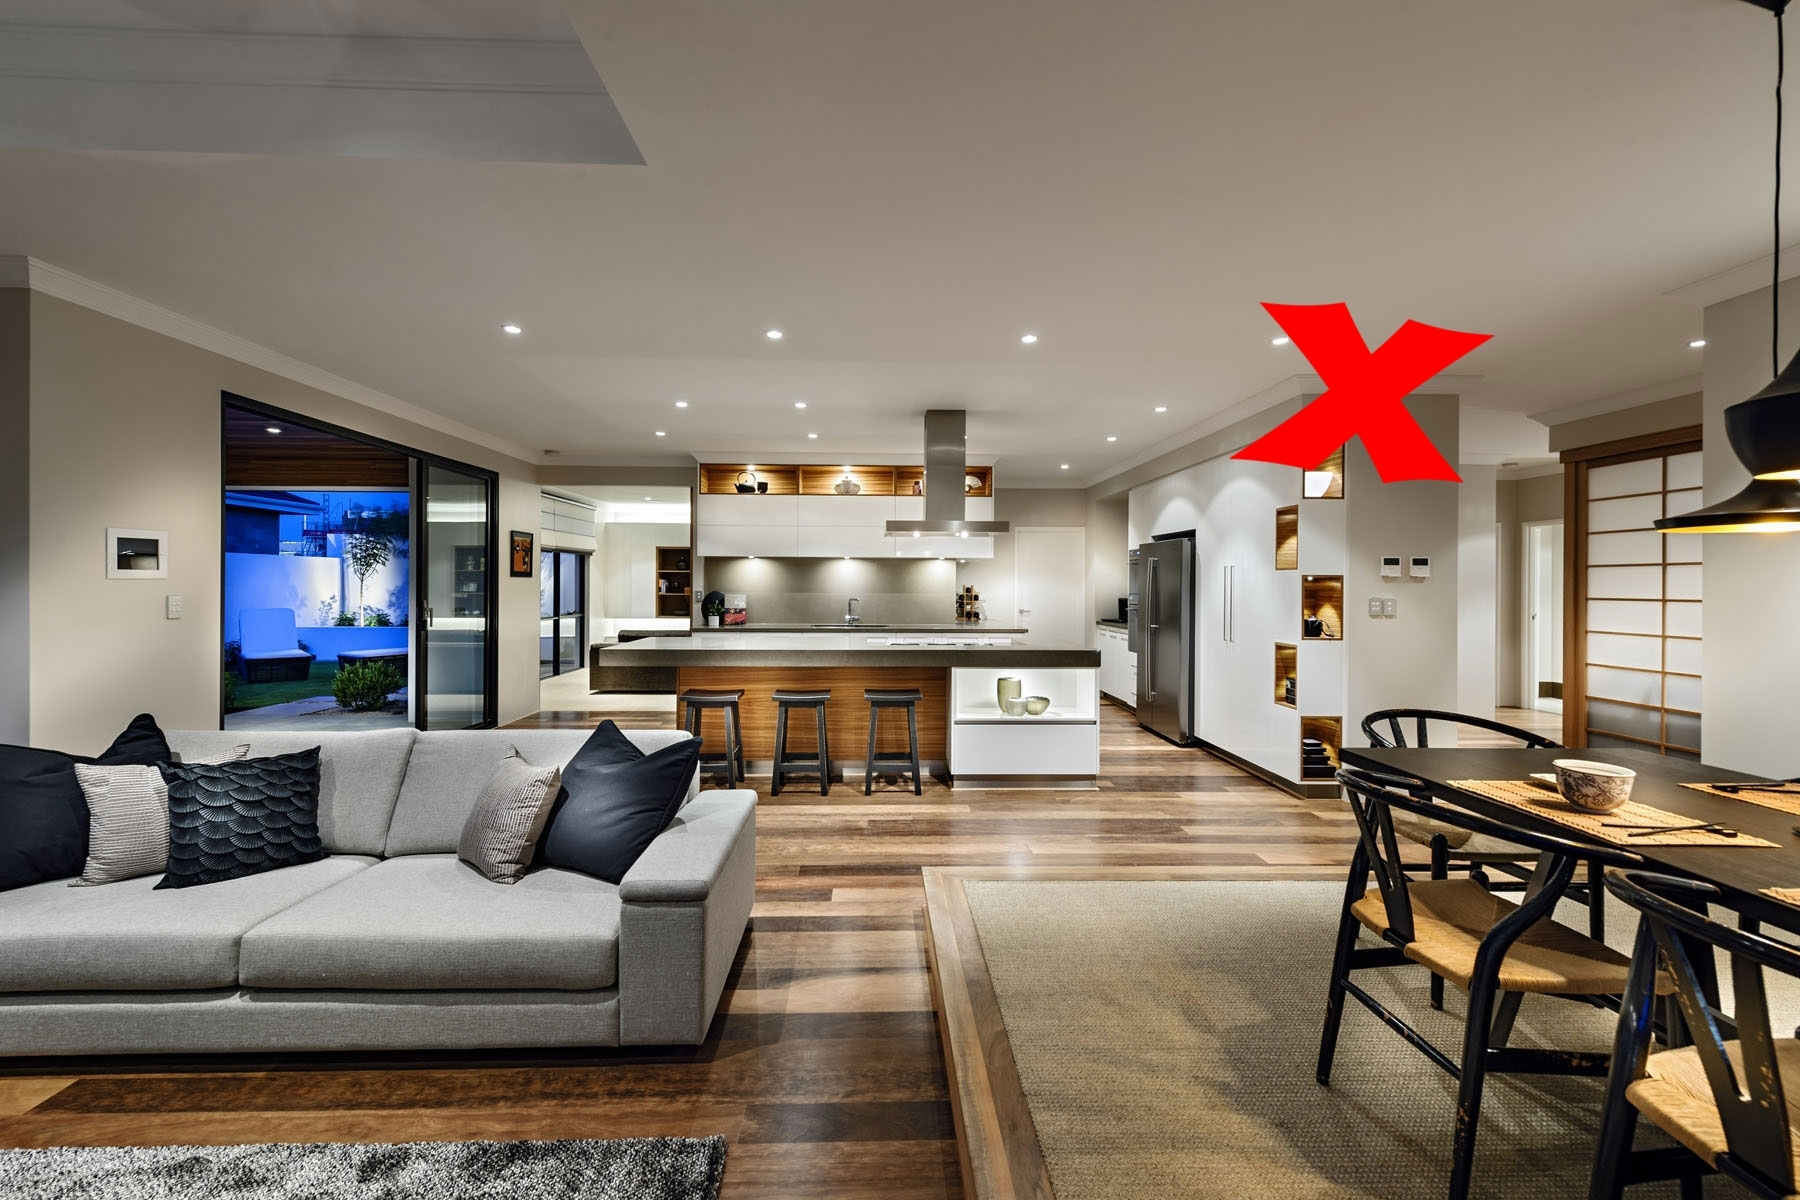 Living-Dining-Kitchen-Open-Plan-House-in-Burns-Beach-Perth.jpg